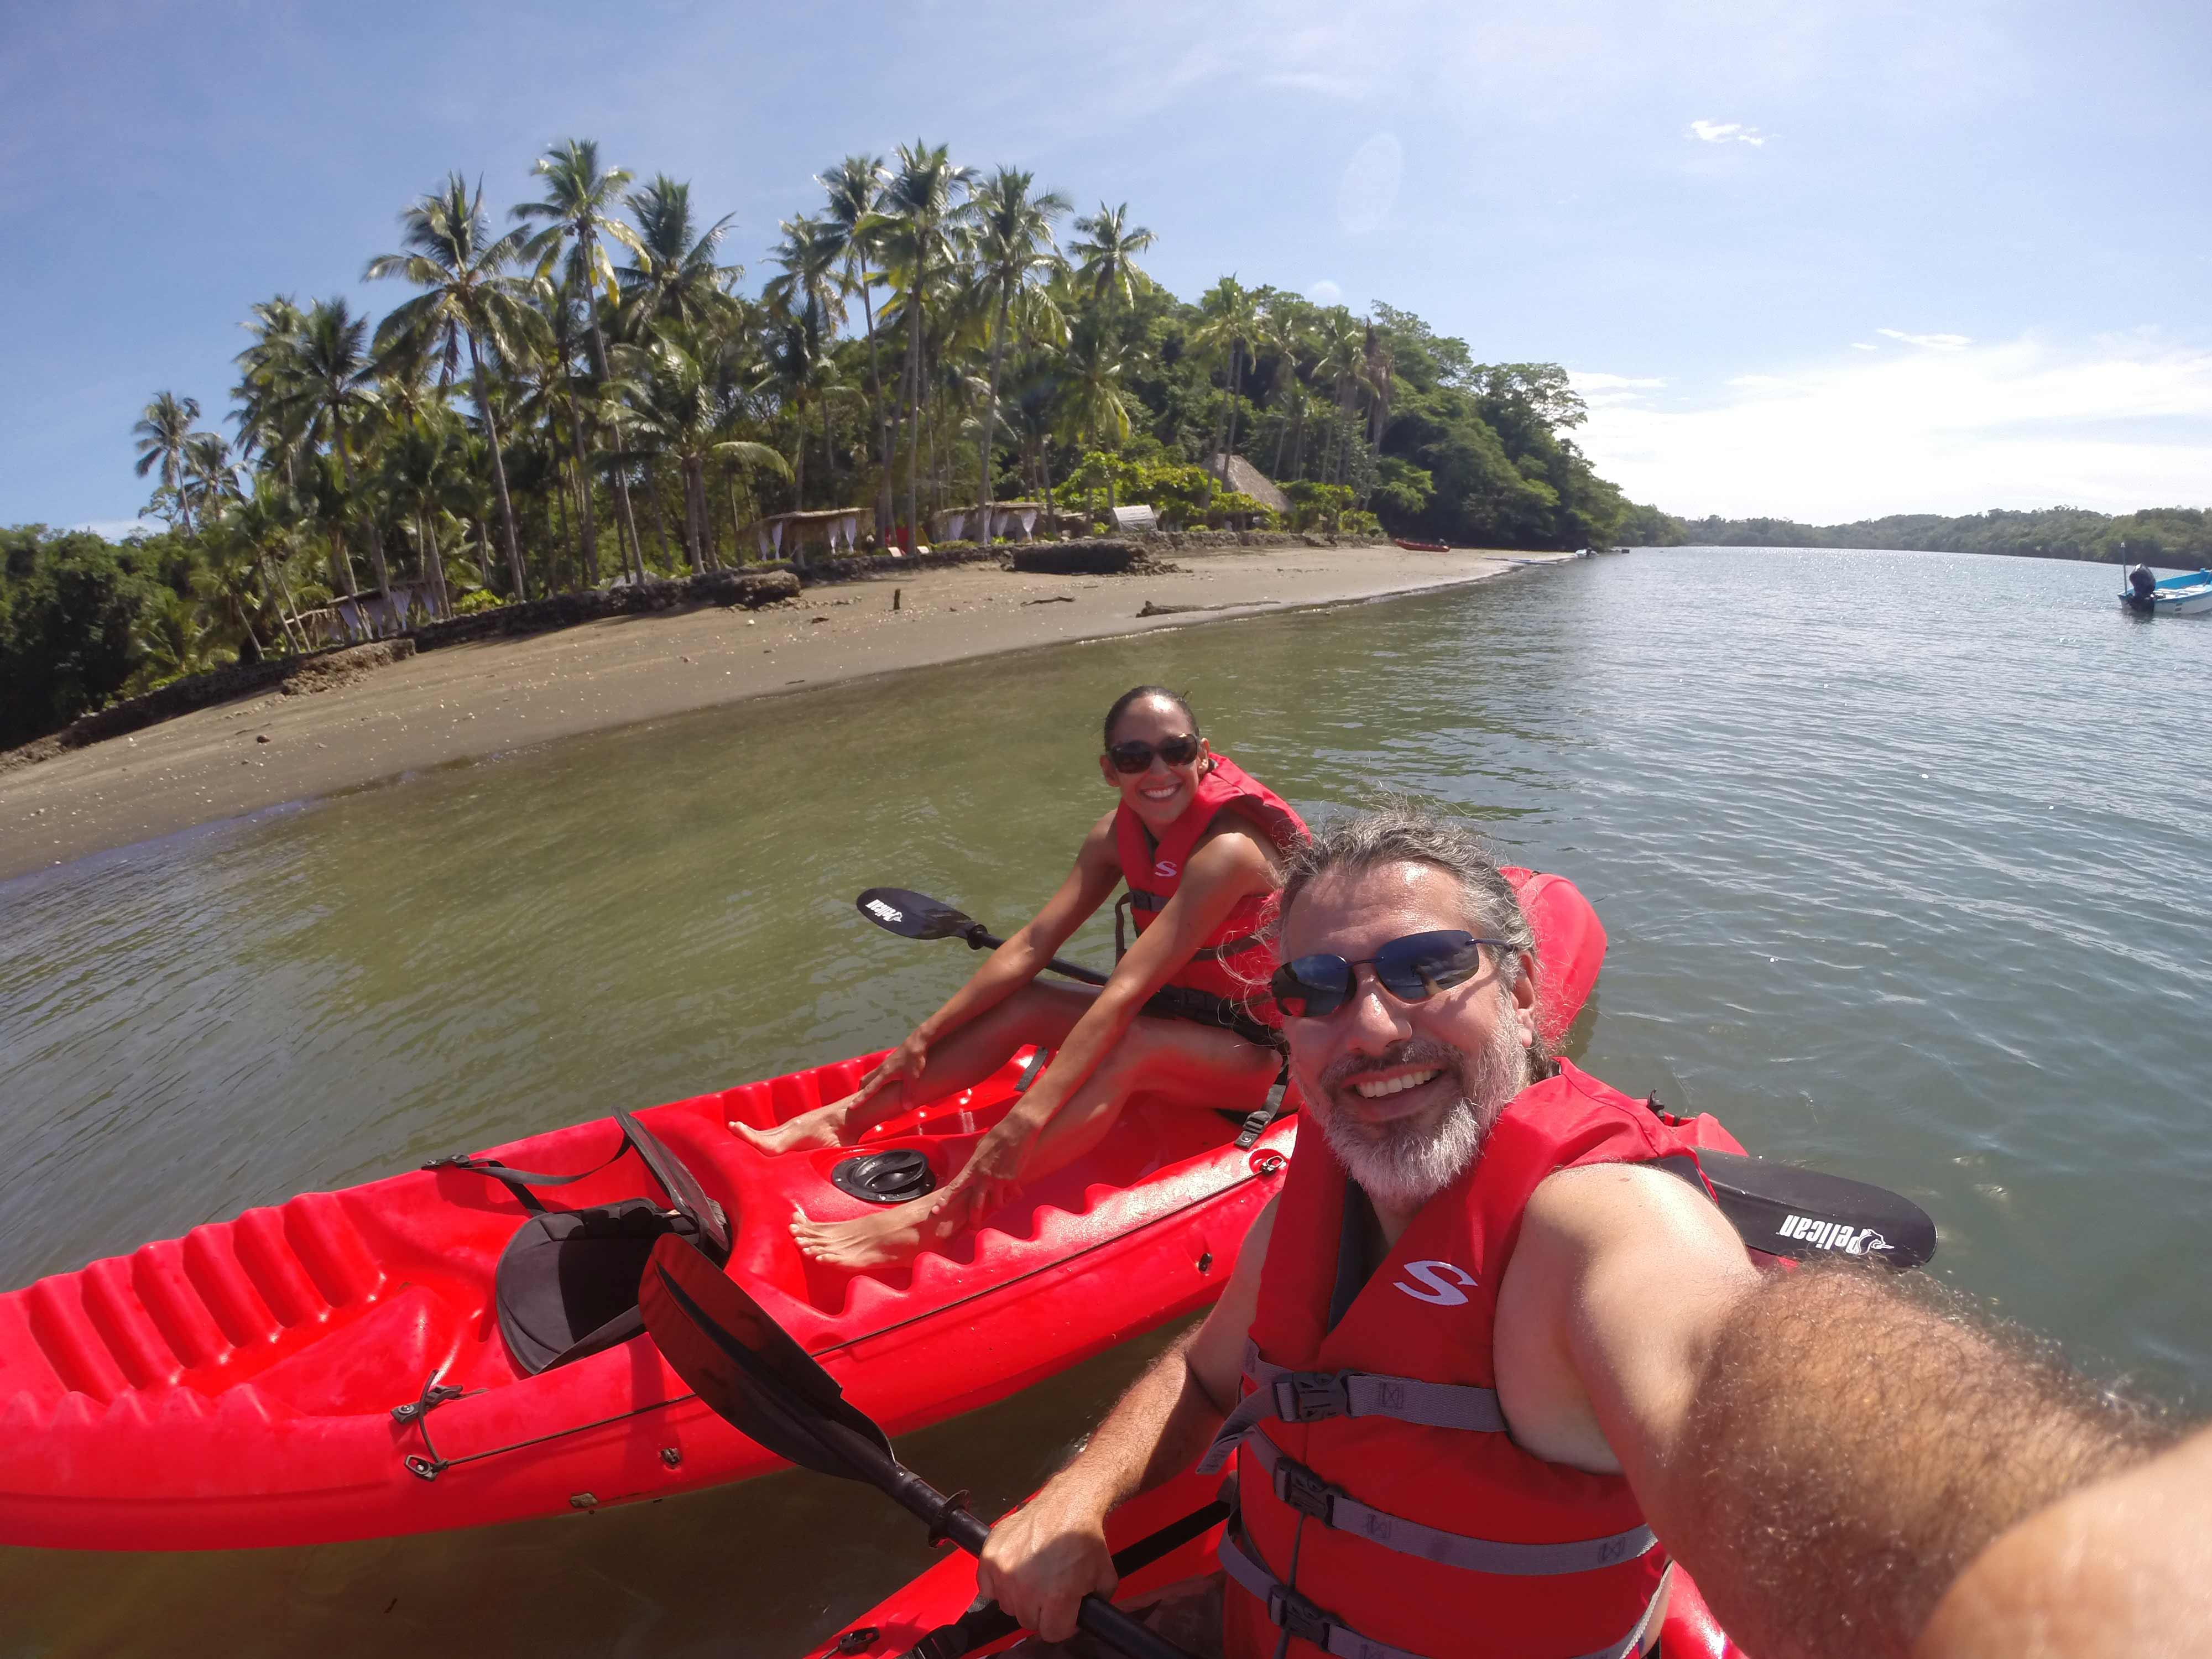 Kayaking and glamping in Costa Rica